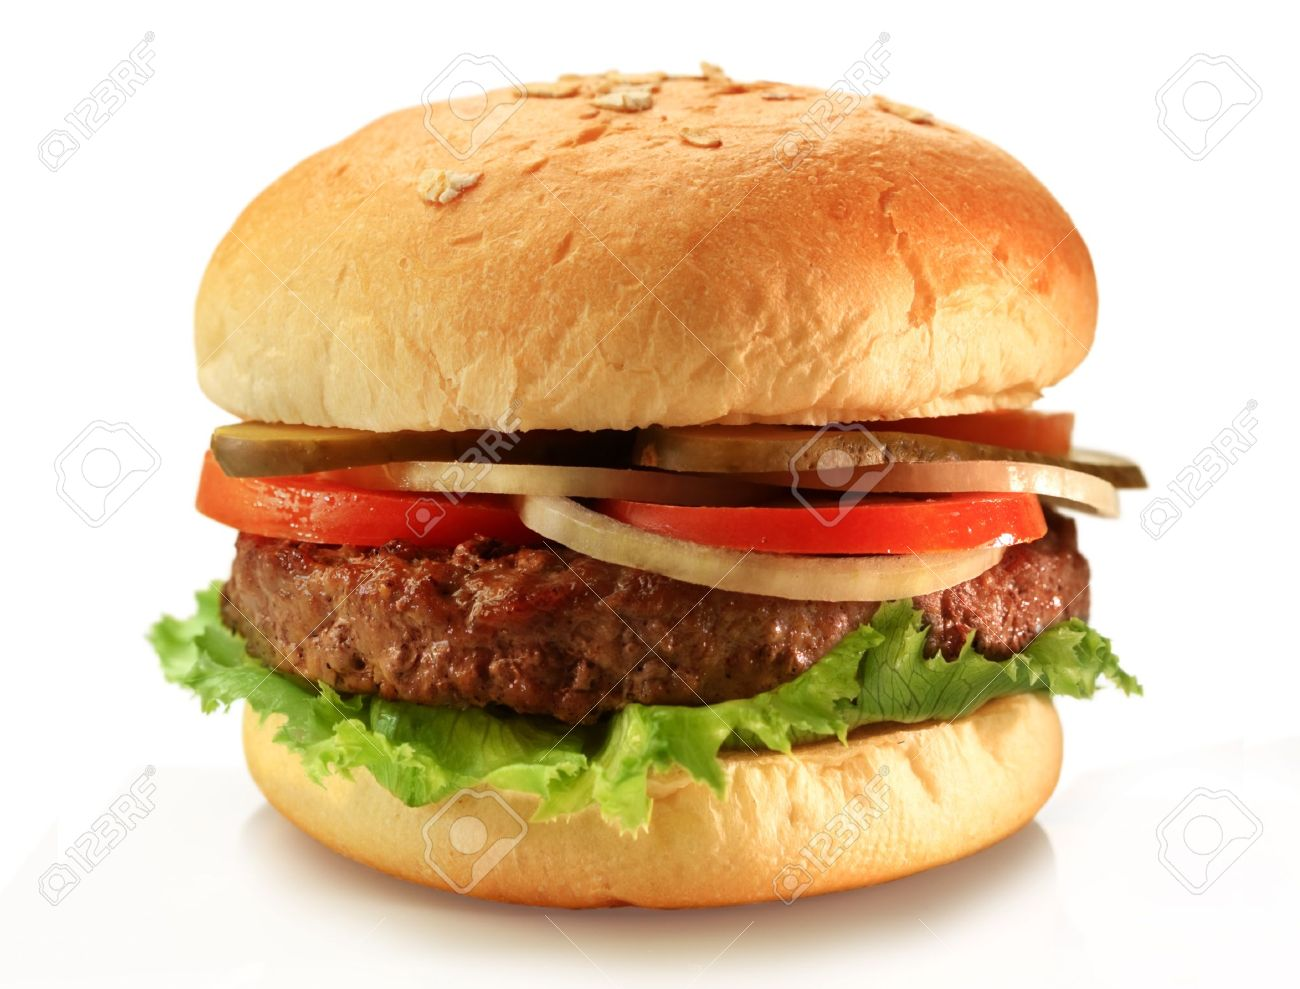 Delicious juicy grilled burger on wheat buns Stock Photo - 12156625